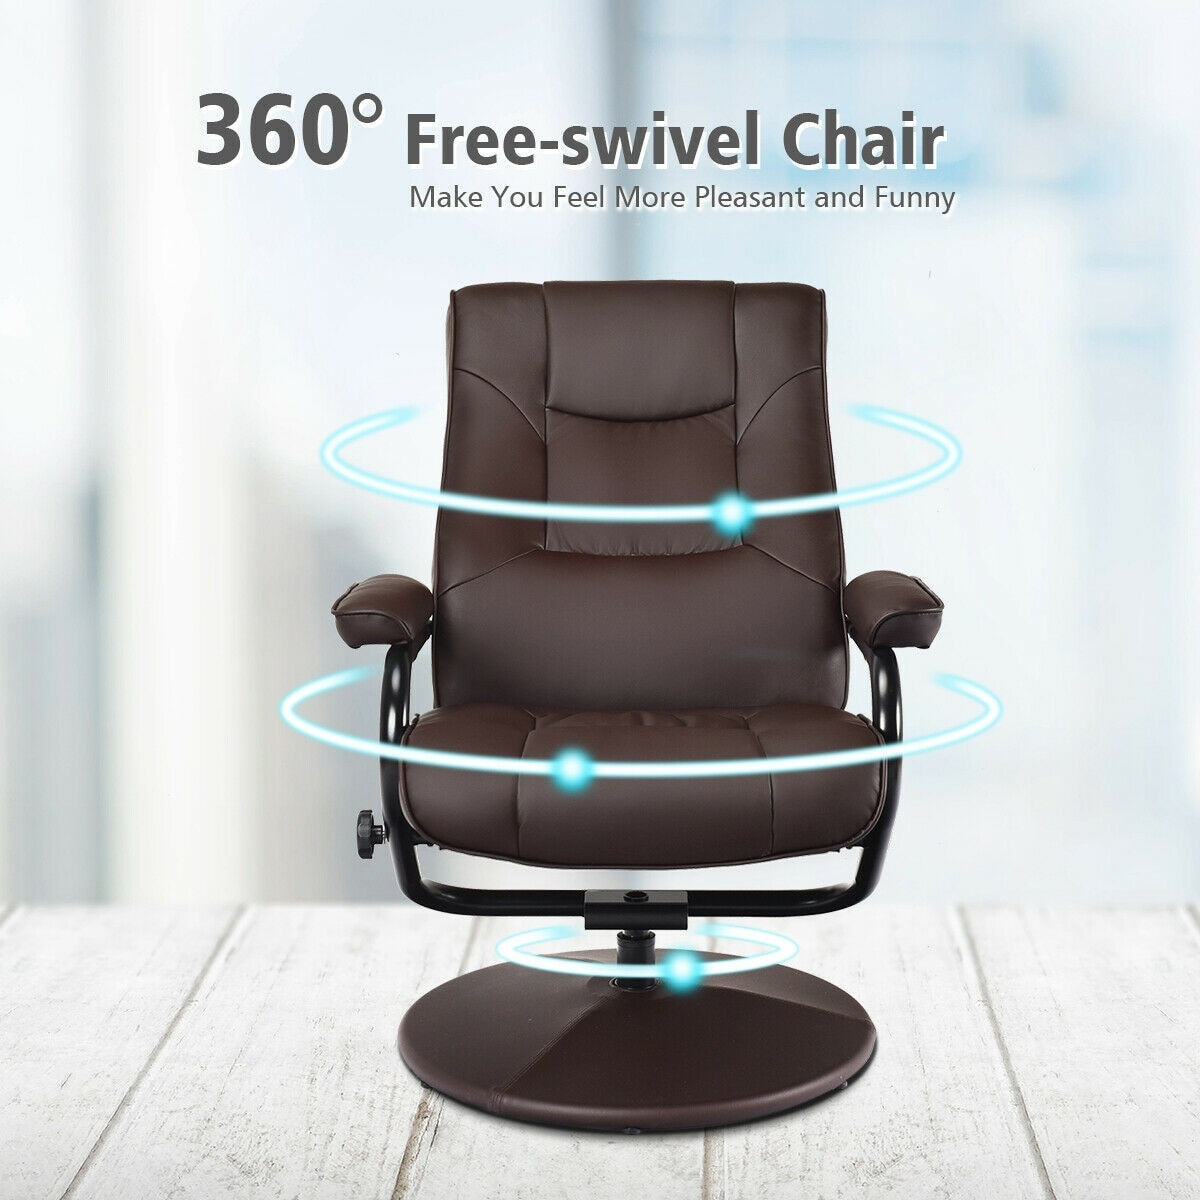 Fabulous Costway Recliner Chair Swivel Armchair Lounge Seat W Footrest Stool Ottoman Home Brown Ncnpc Chair Design For Home Ncnpcorg